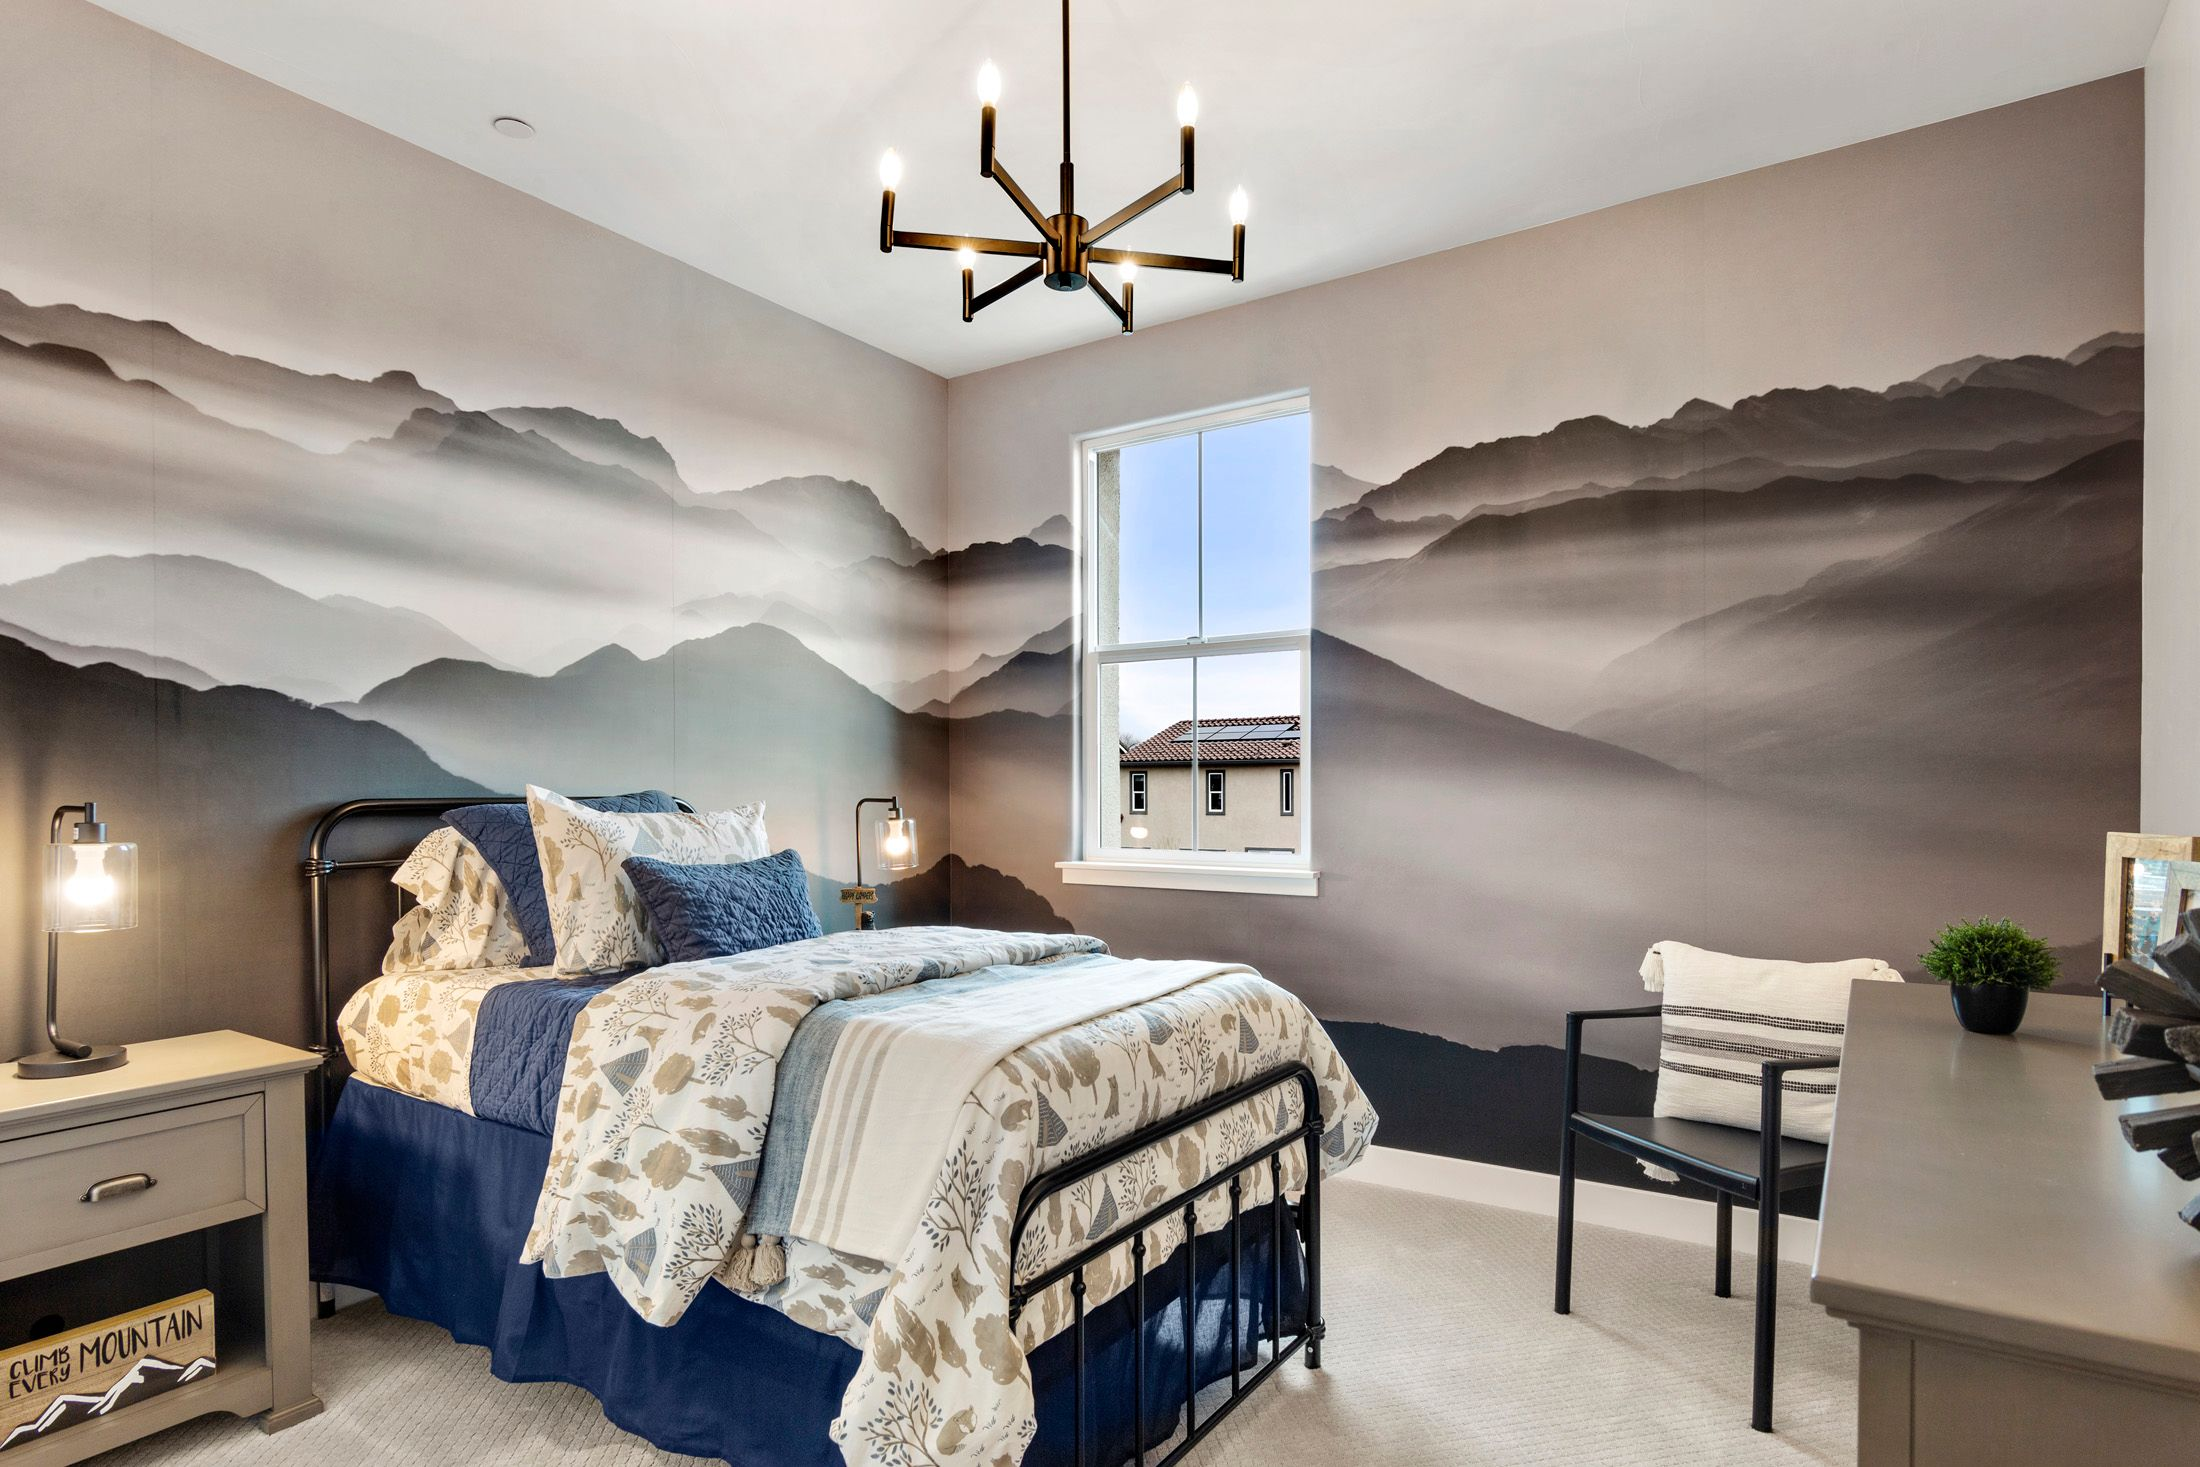 Bedroom featured in the Millstone Residence 3 By BlackPine Communites in Sacramento, CA